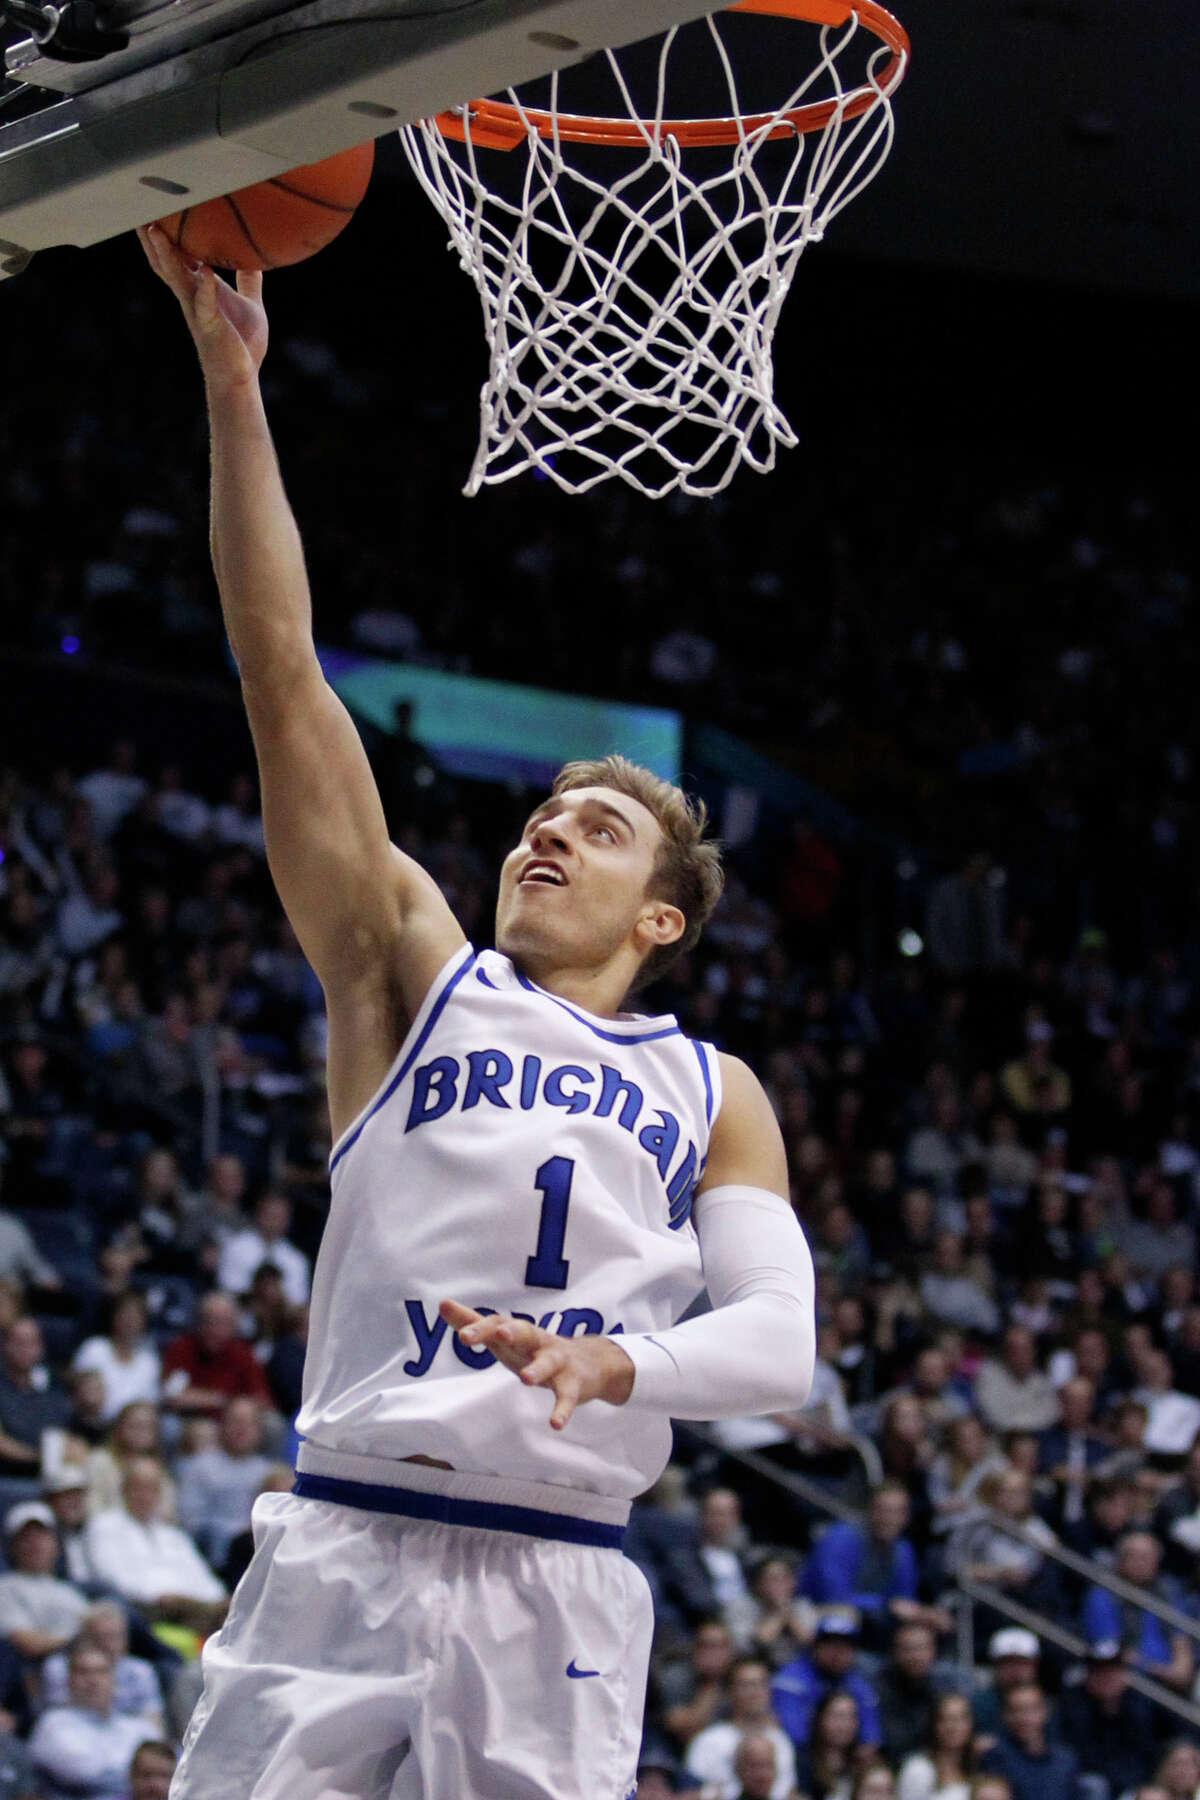 3. BYU guard Chase Fischer scored 41 points to go with five rebounds and four assists as the Cougars defeated New Mexico on Wednesday. On Friday, he led BYU with 26 points in a win over Northern Iowa.